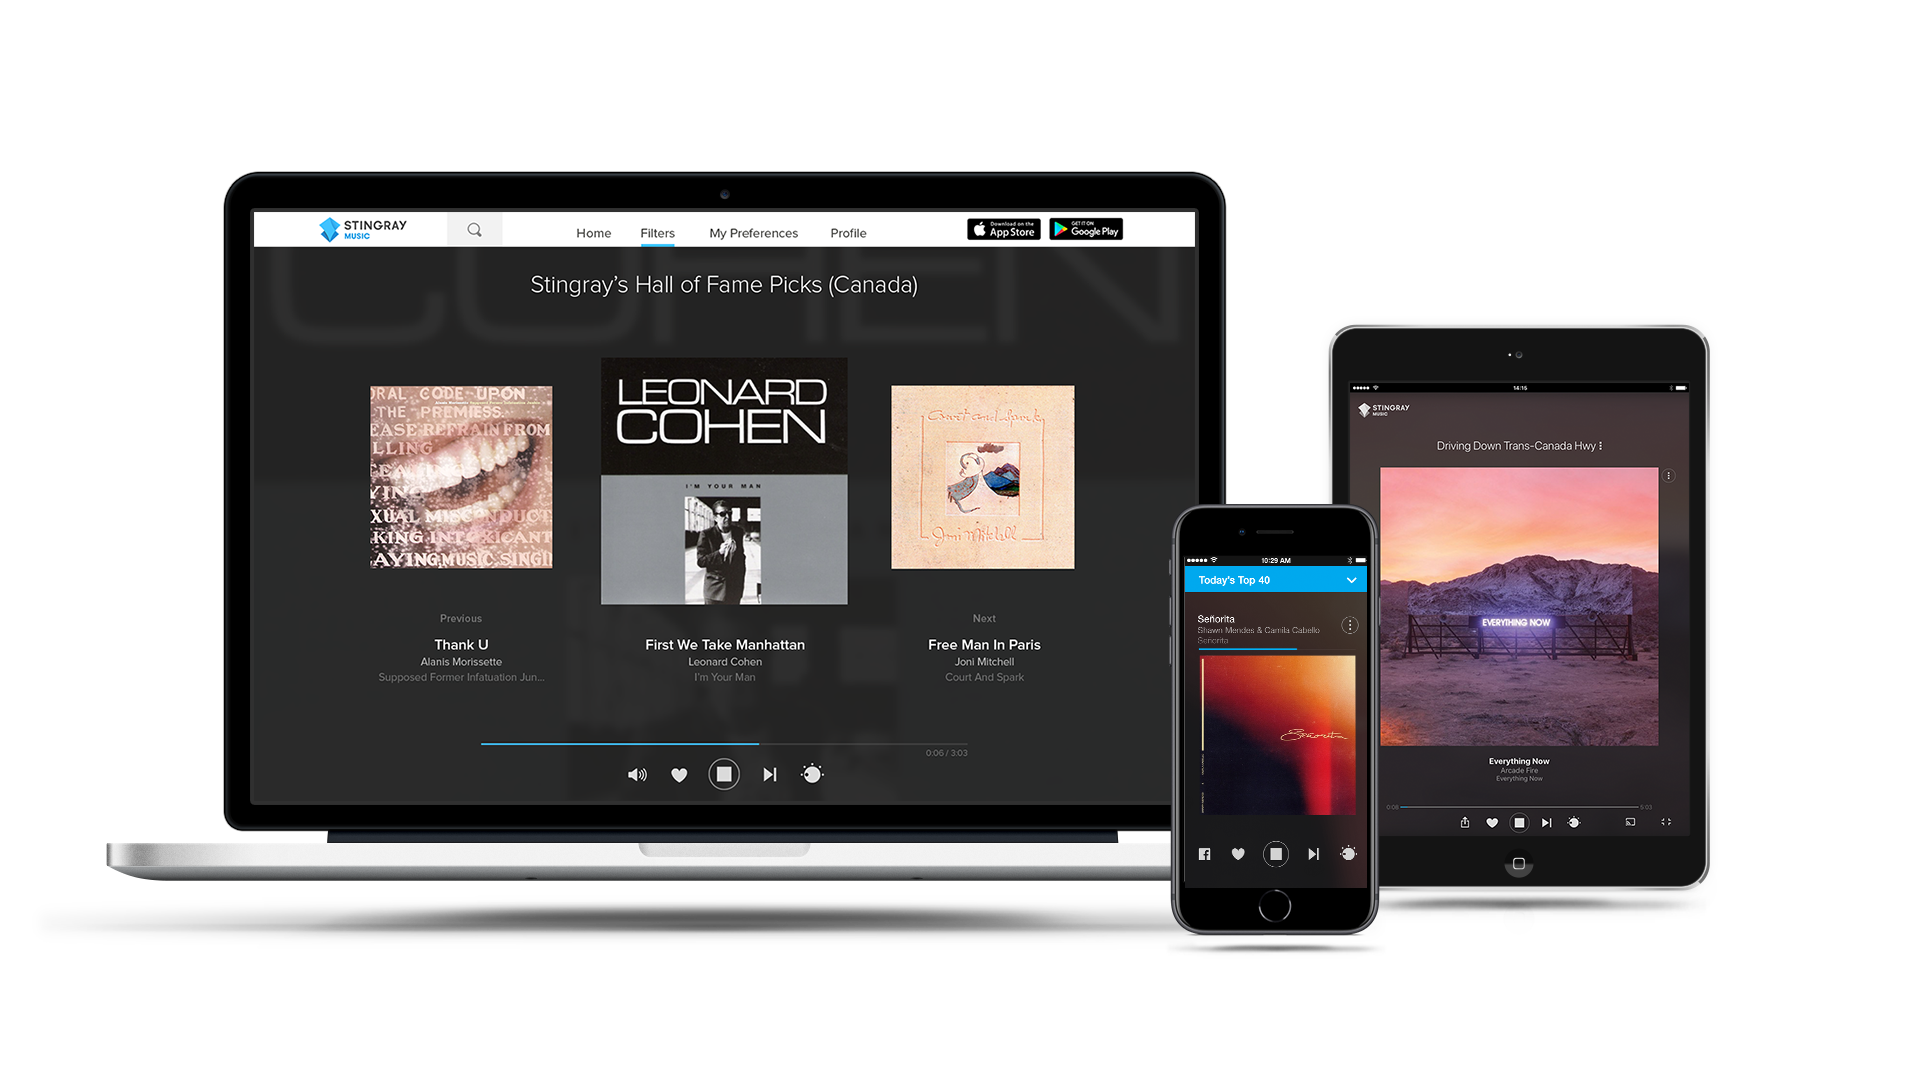 Start streaming music now with the Stingray Music mobile app